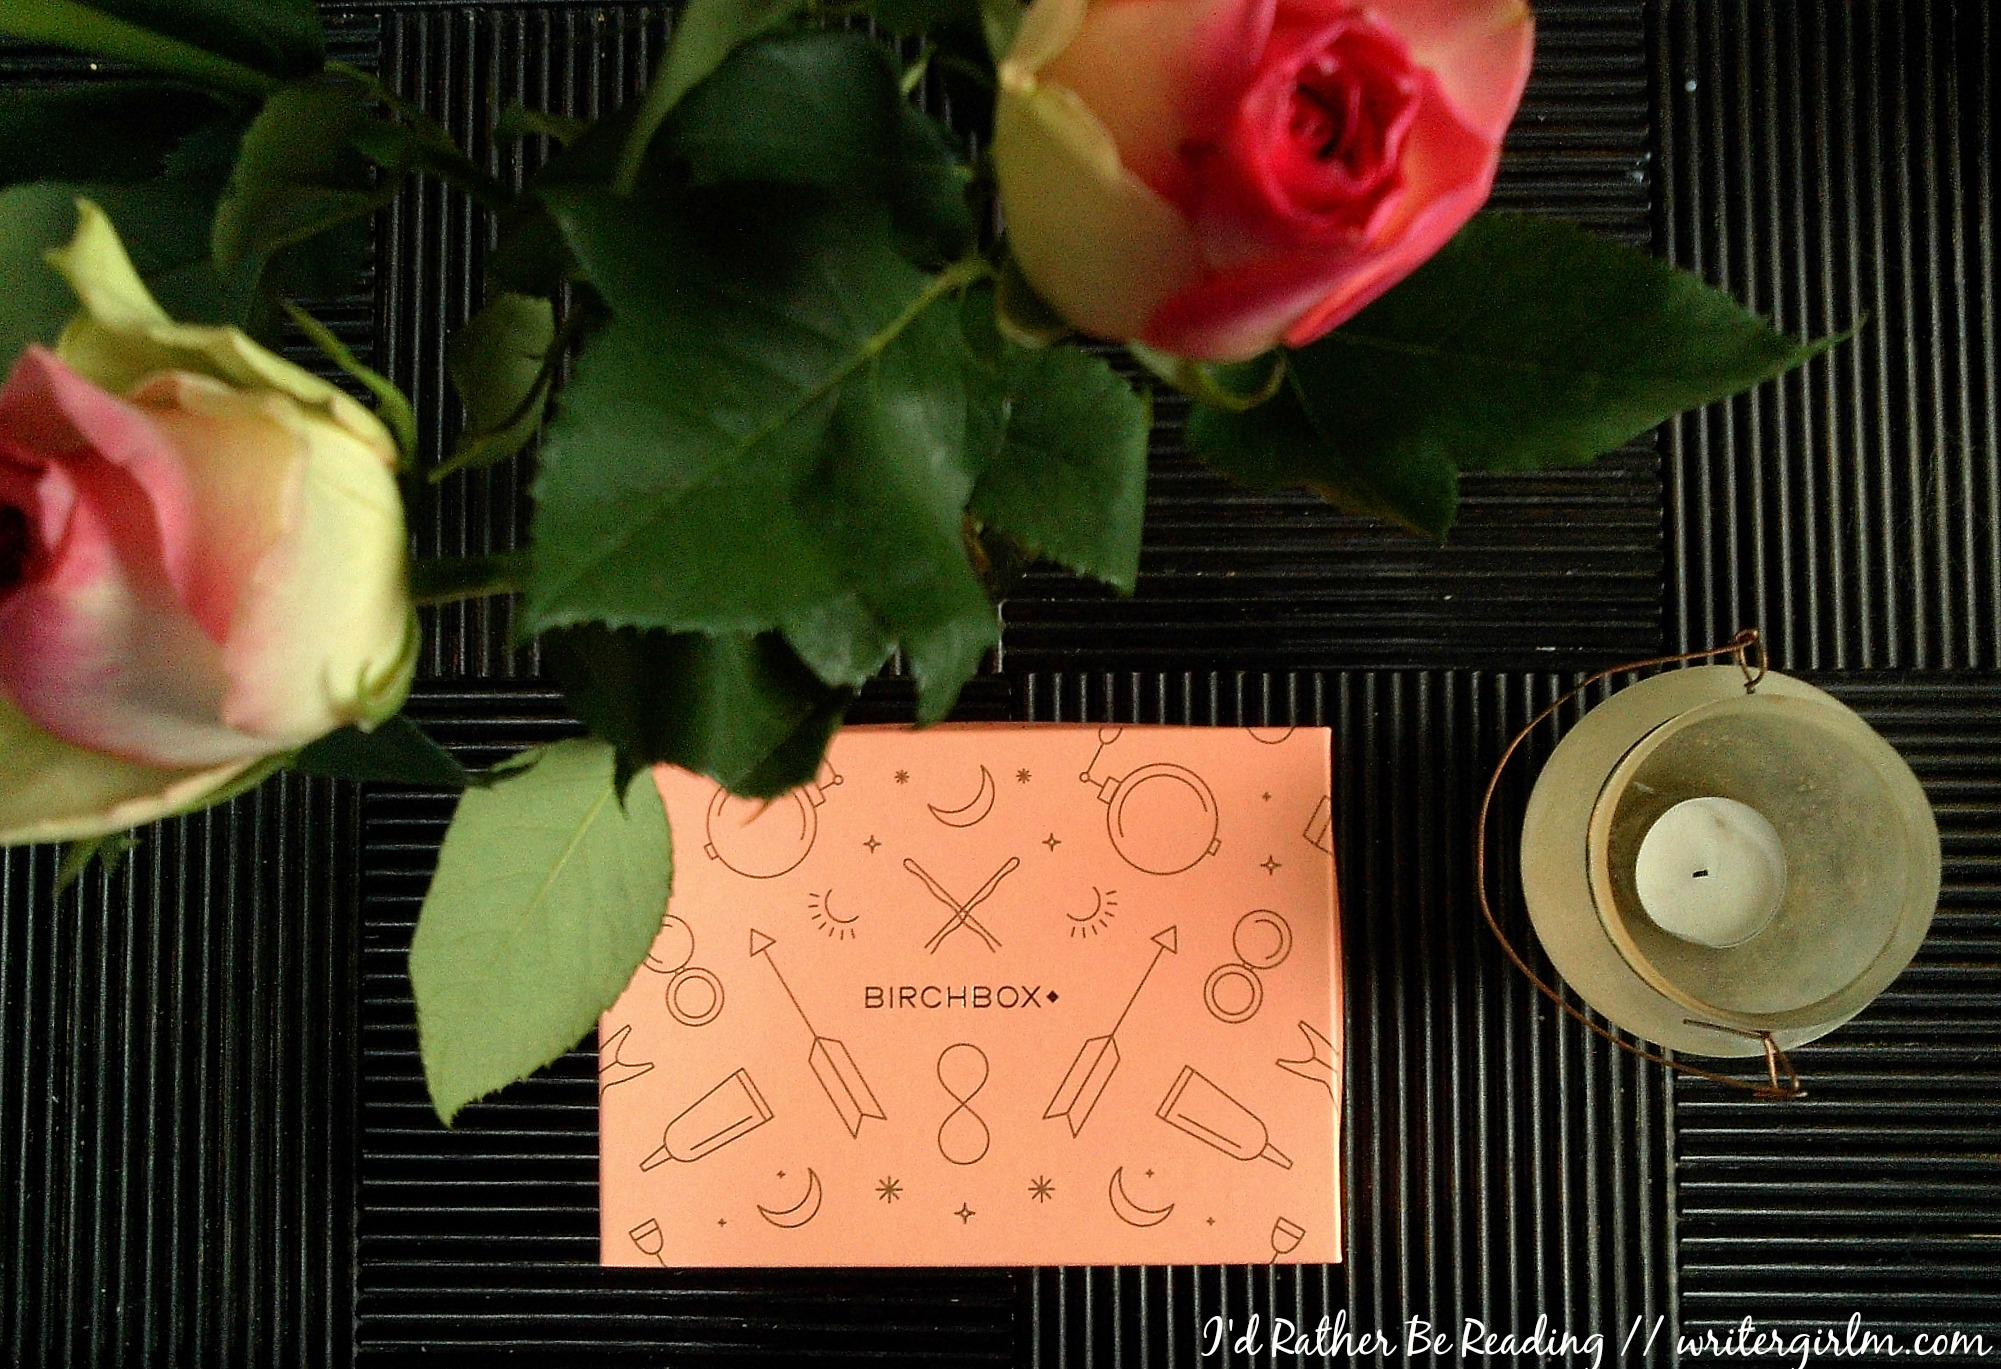 See what I got in my February 2016 Birchbox!